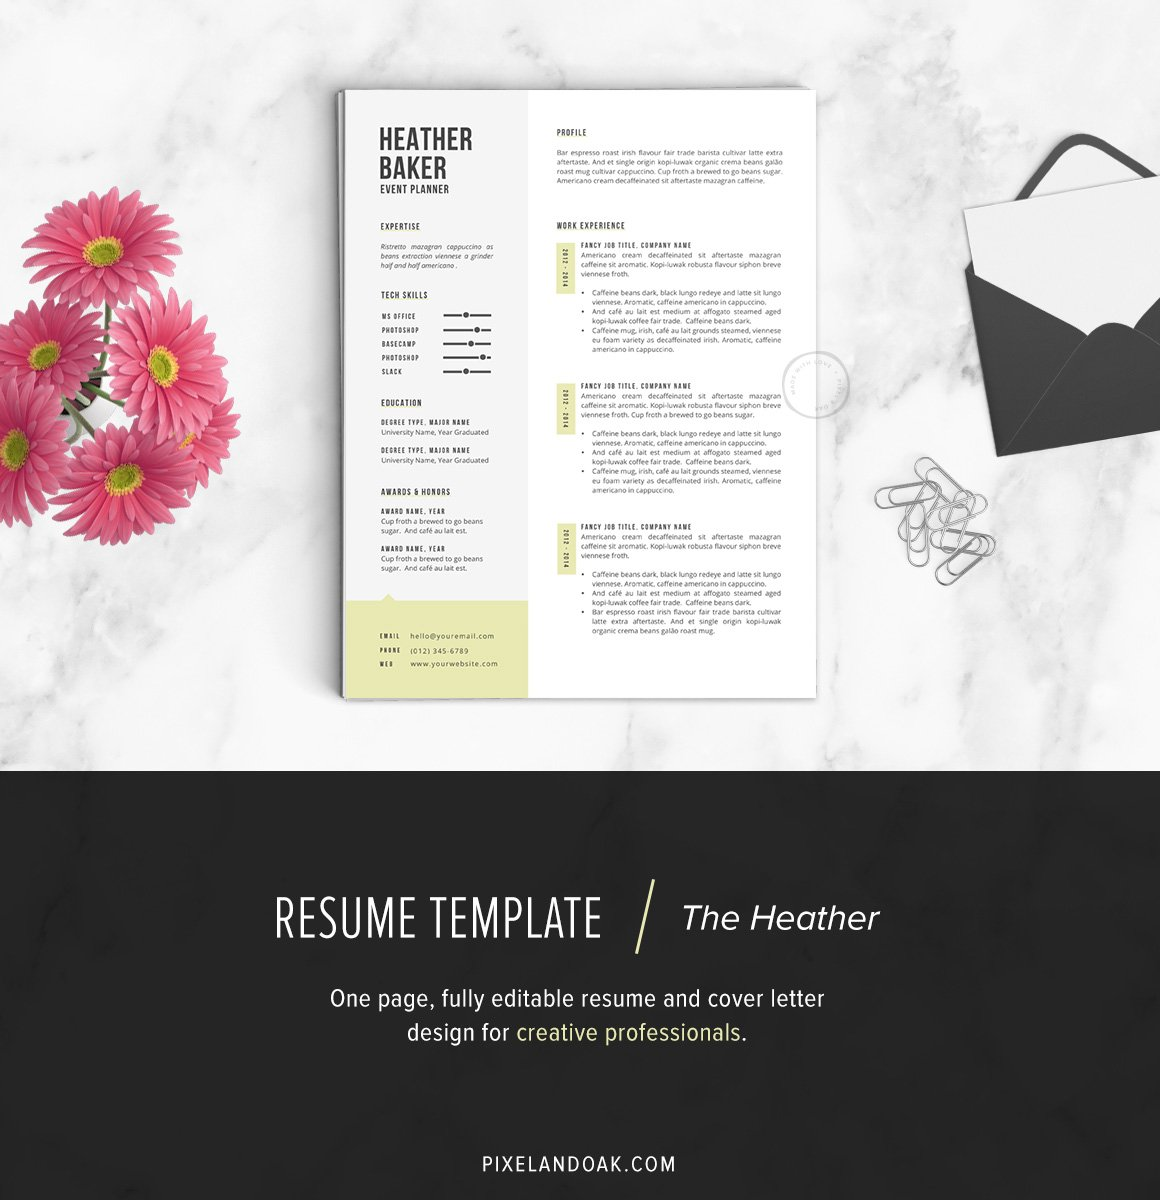 resume template the heather - Professional Resume Design Templates